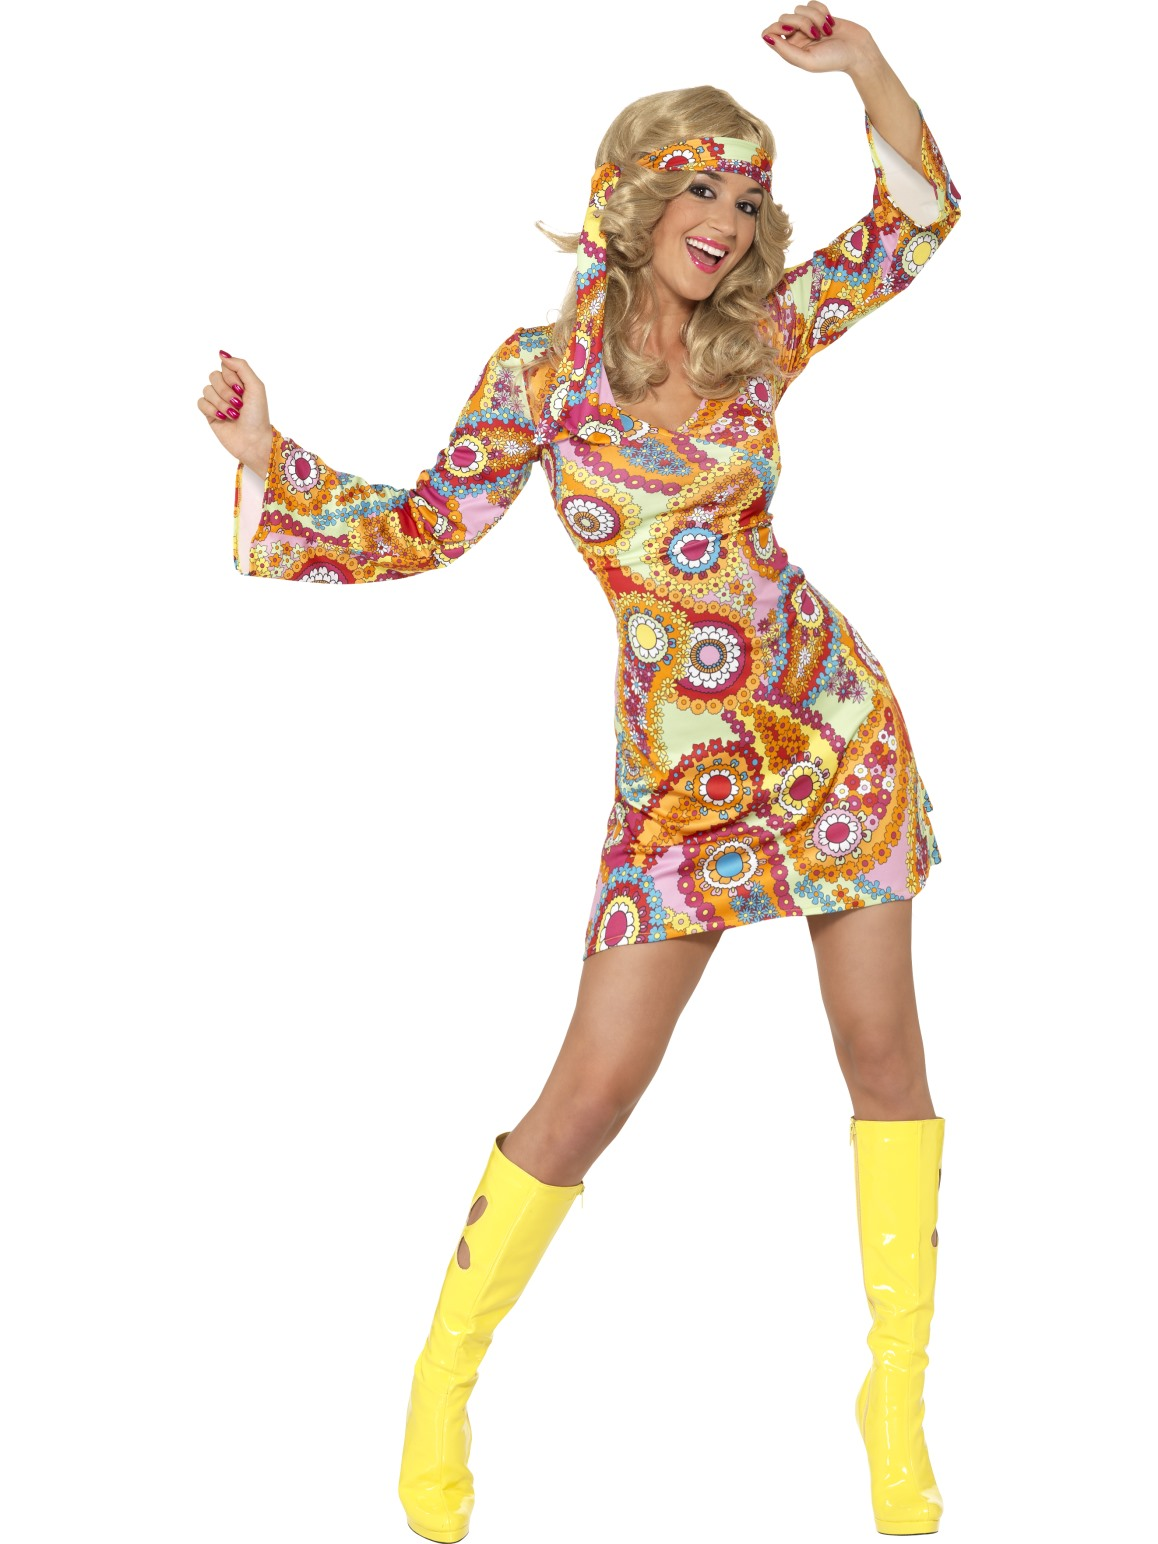 80s Party Leg Avenue 8-14 Disco Chick Costume 70/'s 60/'s Retro Groovy Dress